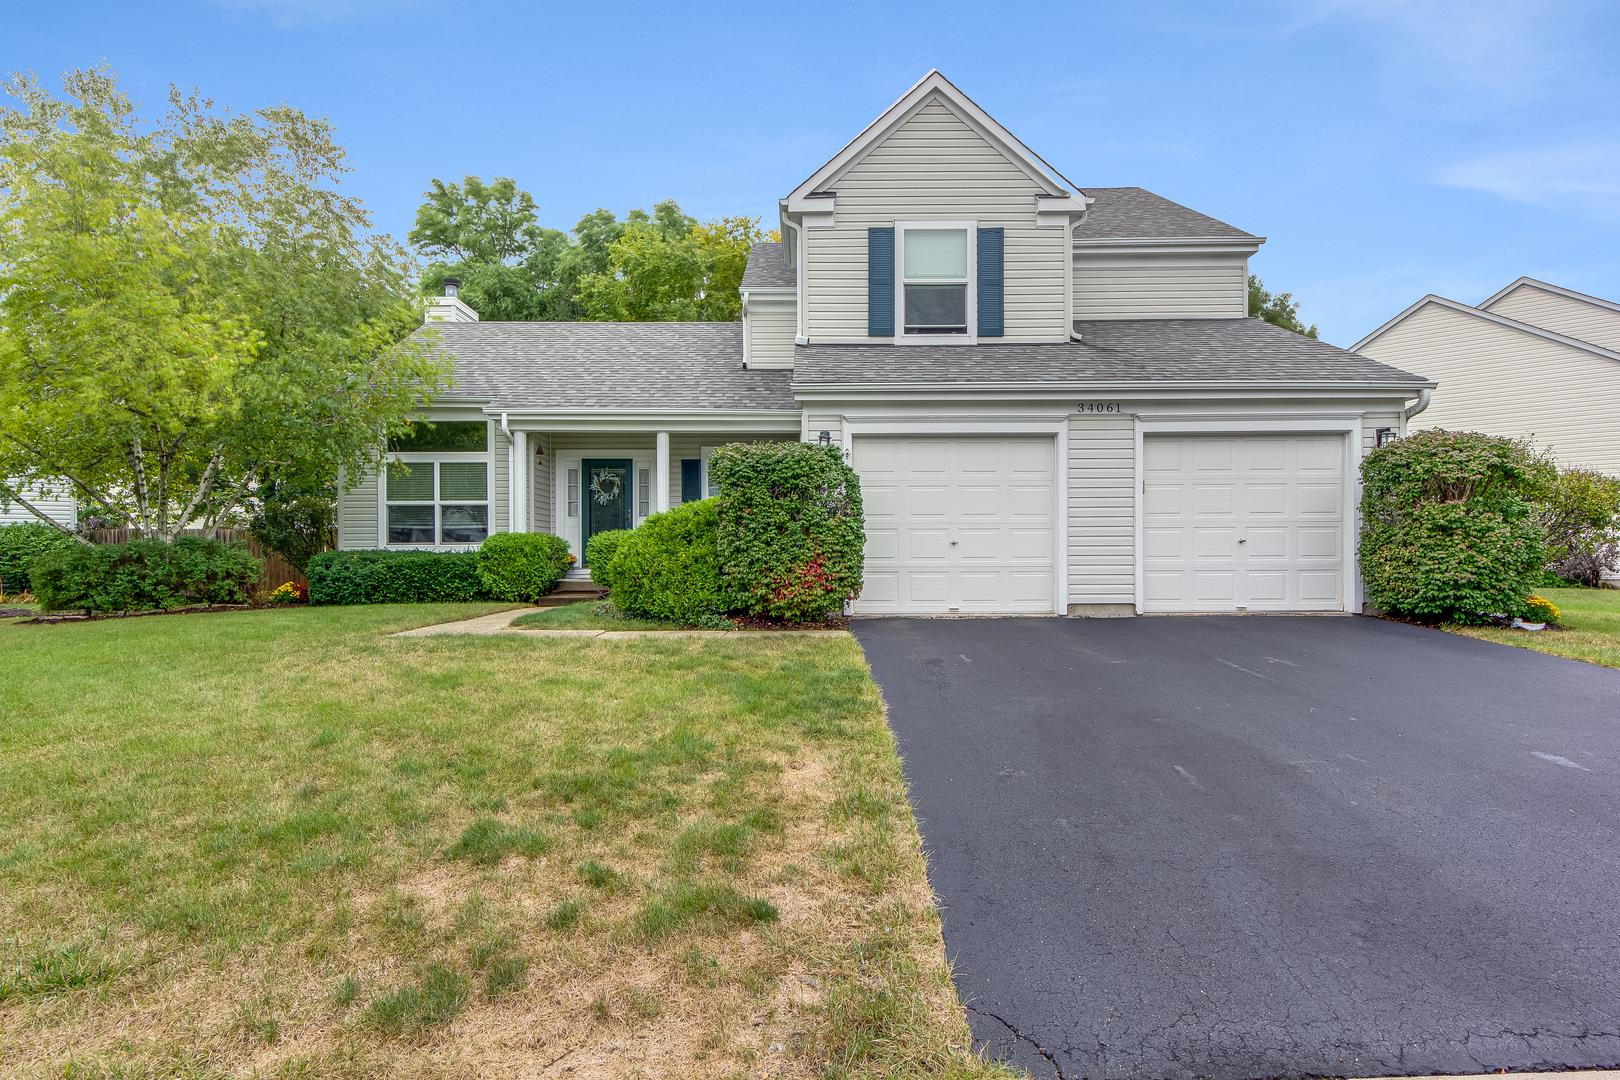 34061 N Old Walnut Circle, Gurnee, IL 60031 - #: 10854030